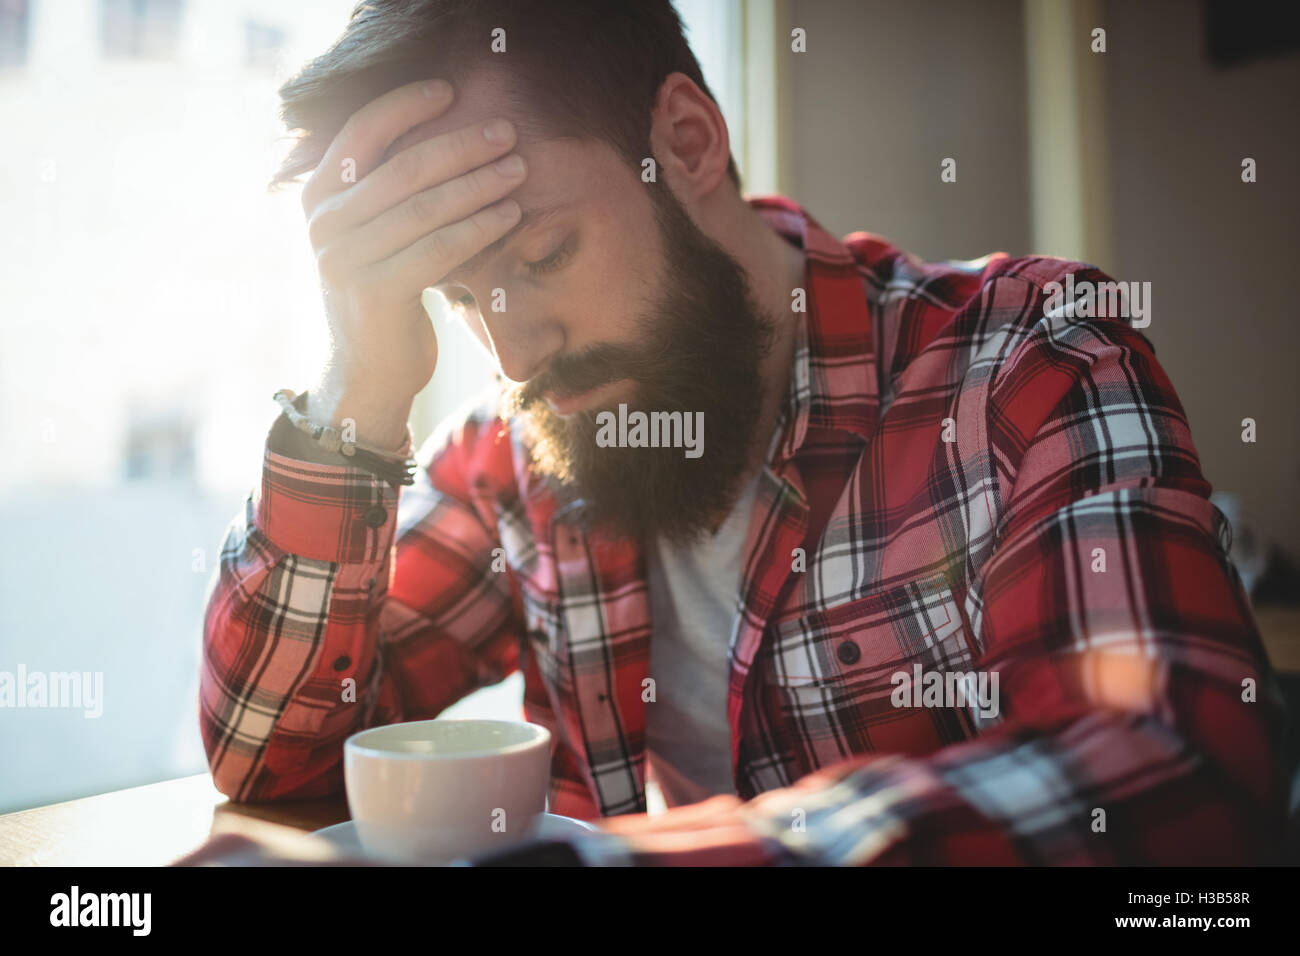 Unhappy customer sitting at cafe - Stock Image